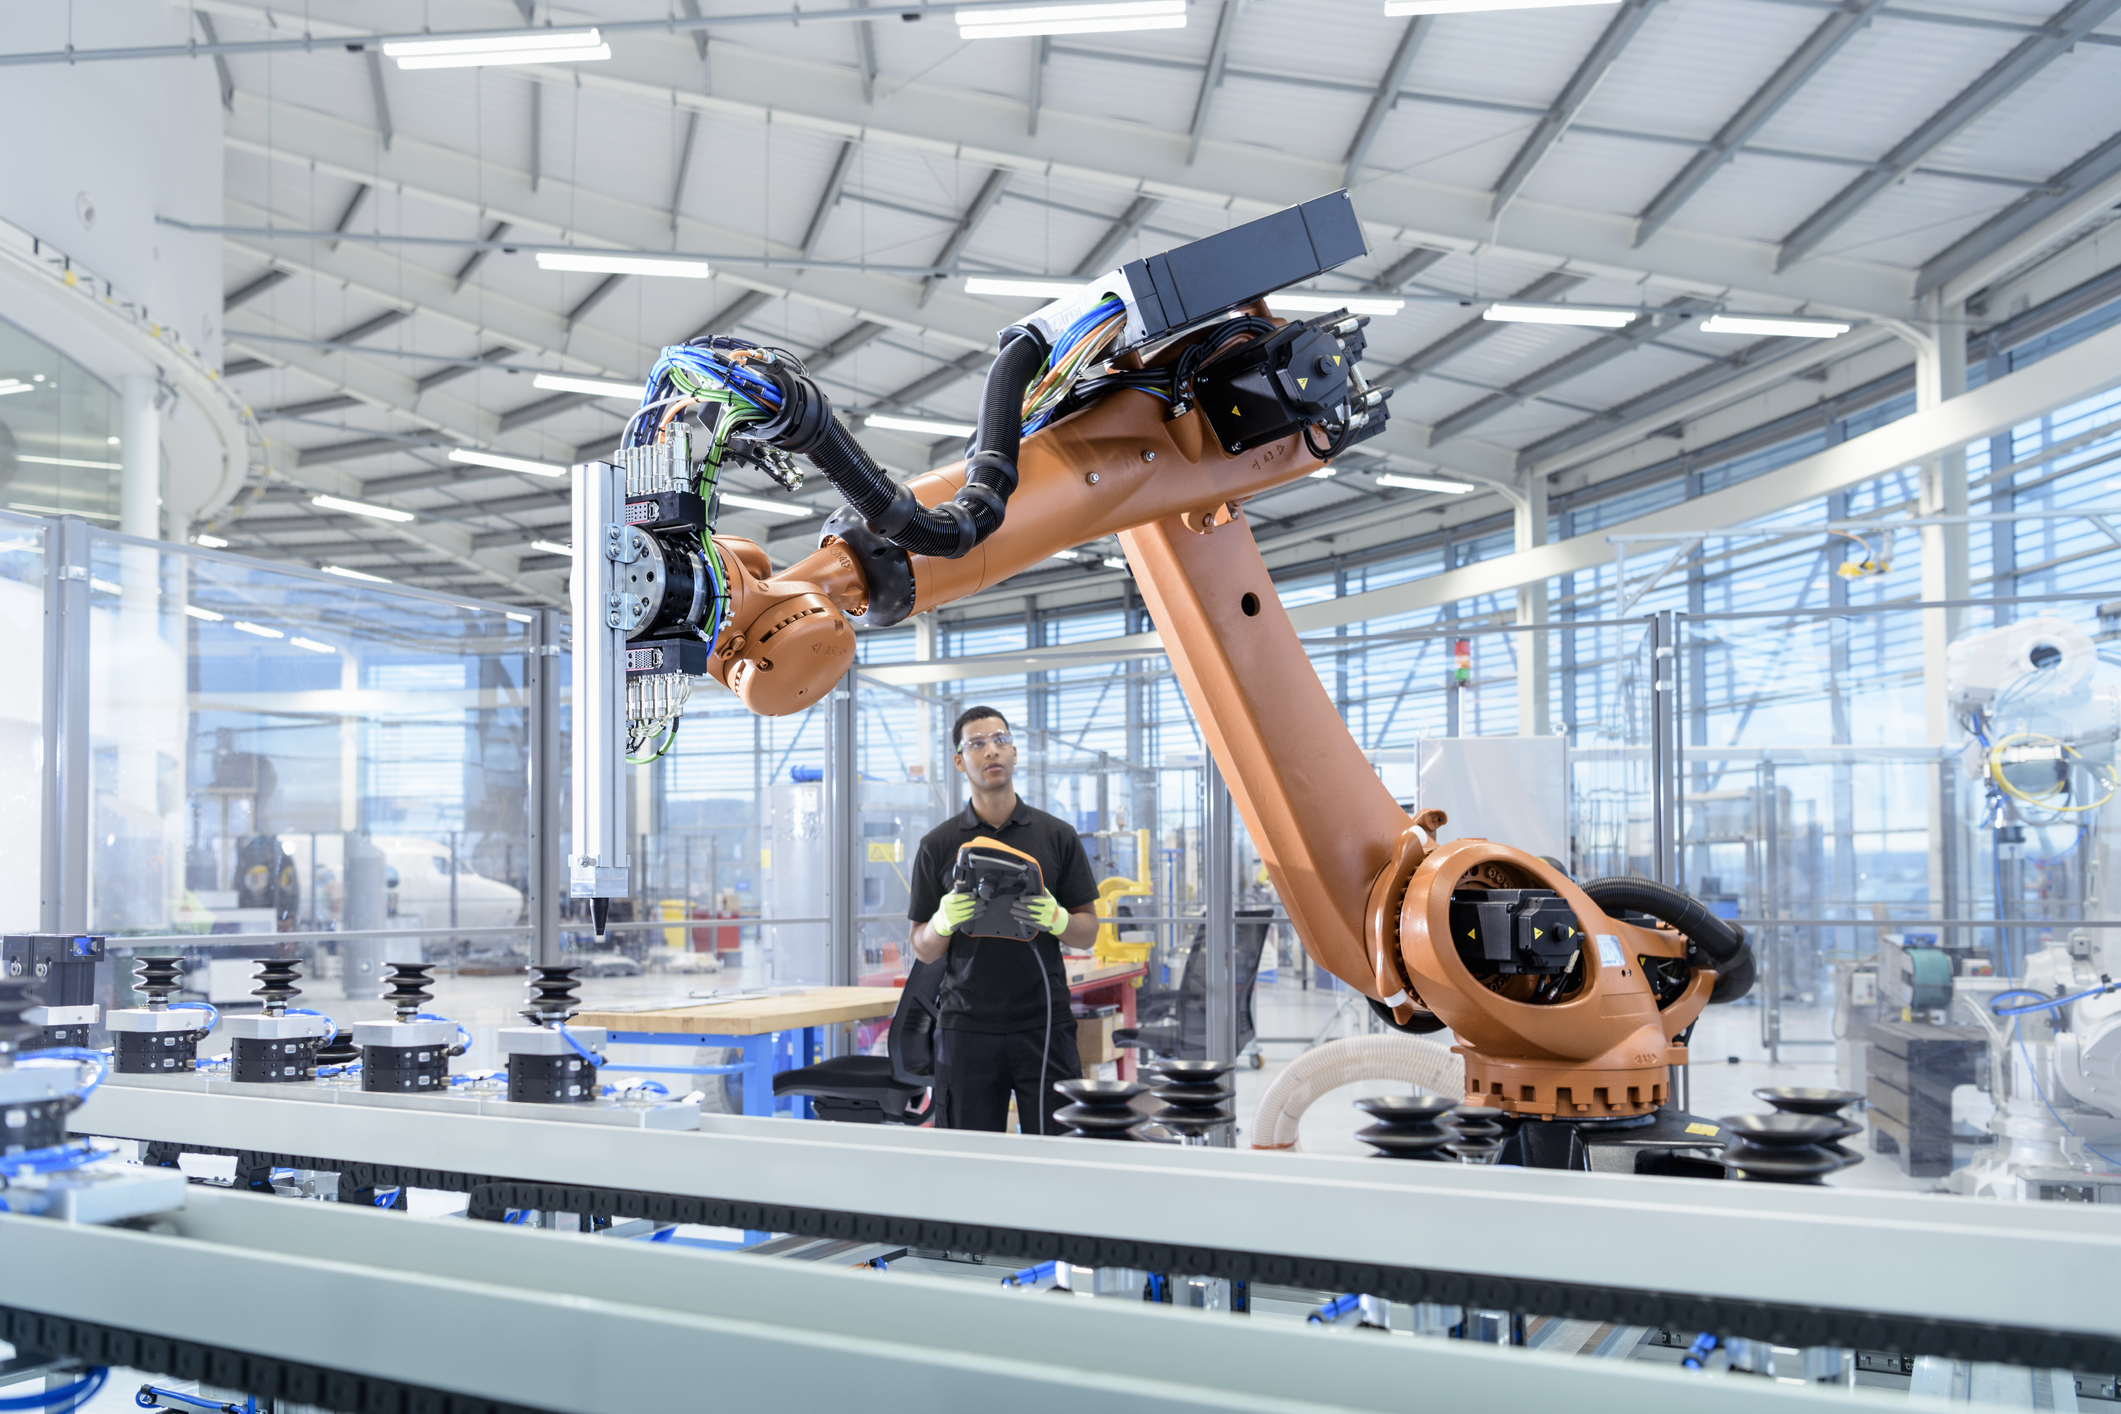 Engineer working with robotic arm on production line